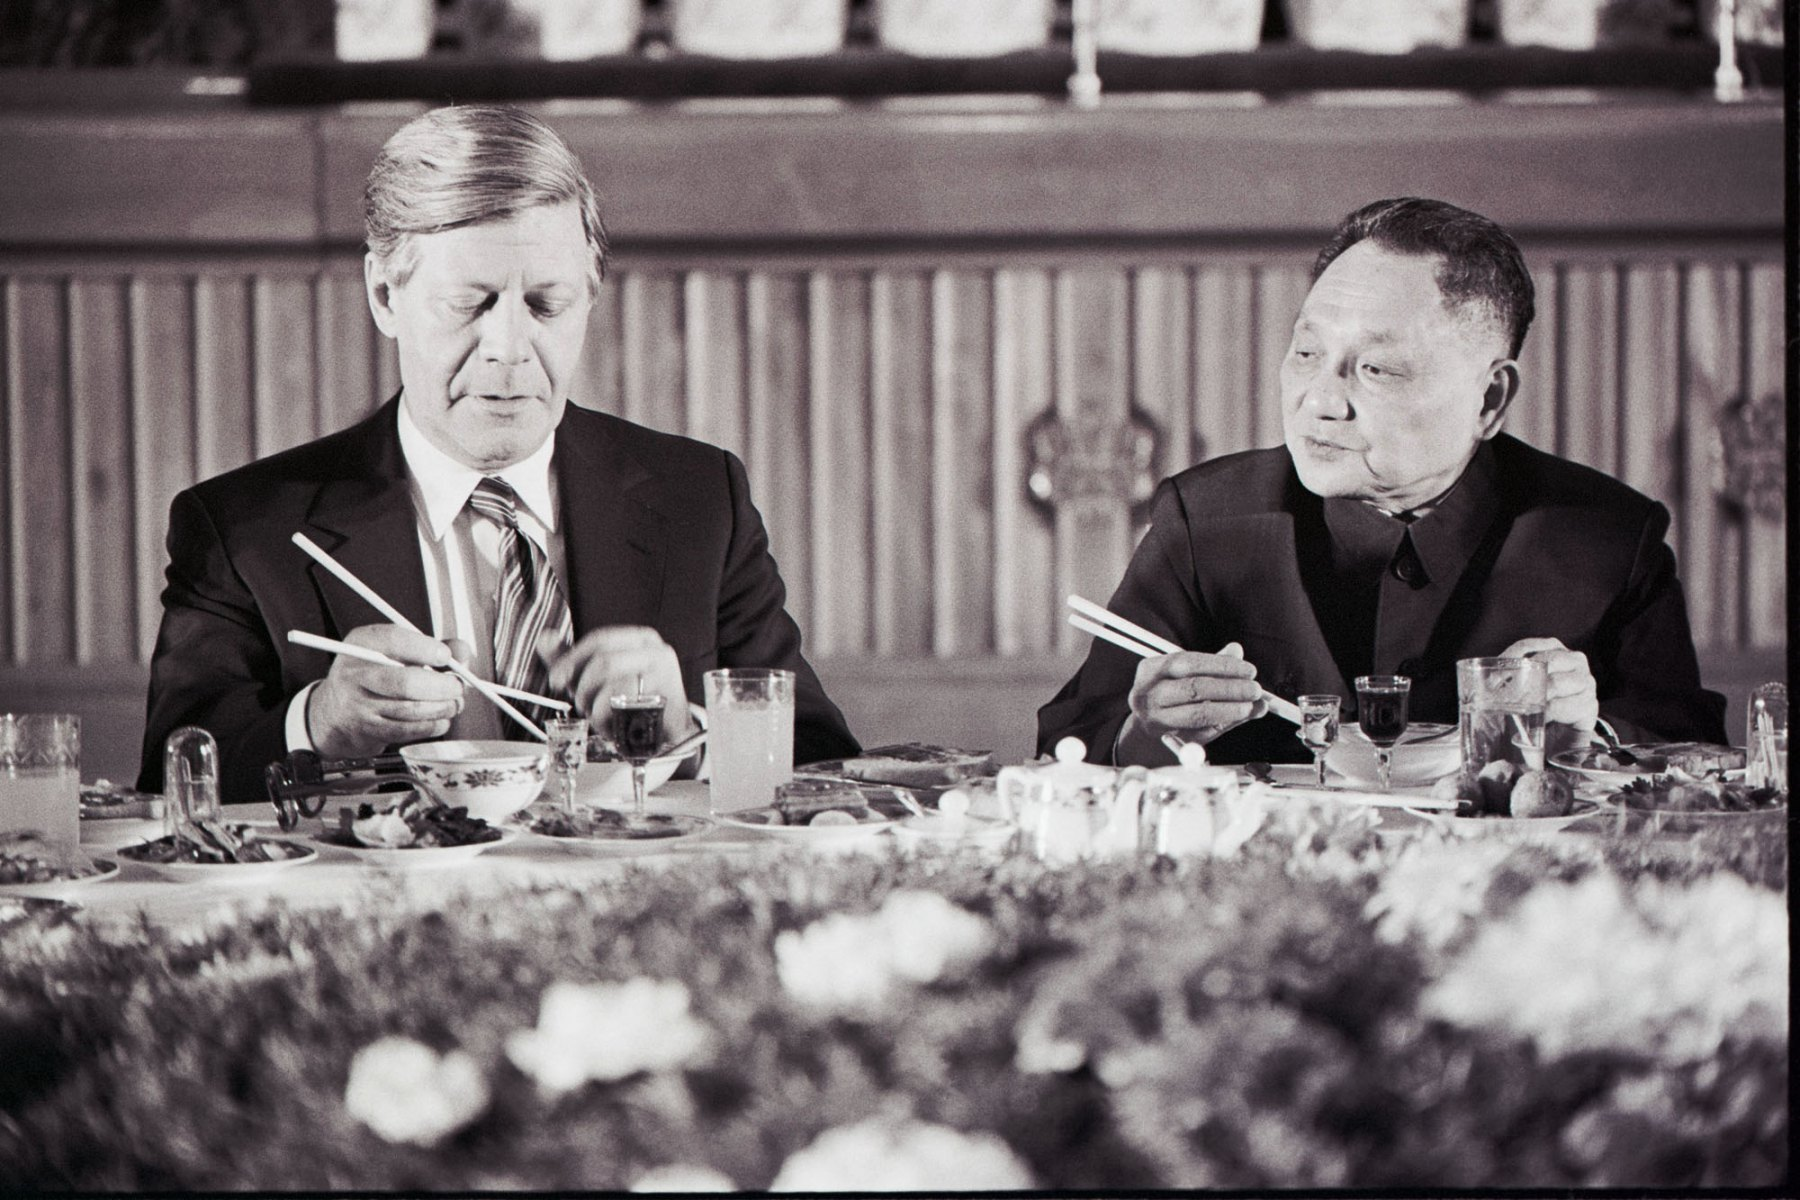 Chancellor Helmut Schmidt and First Vice Premier of China Deng Xiaoping, 1975